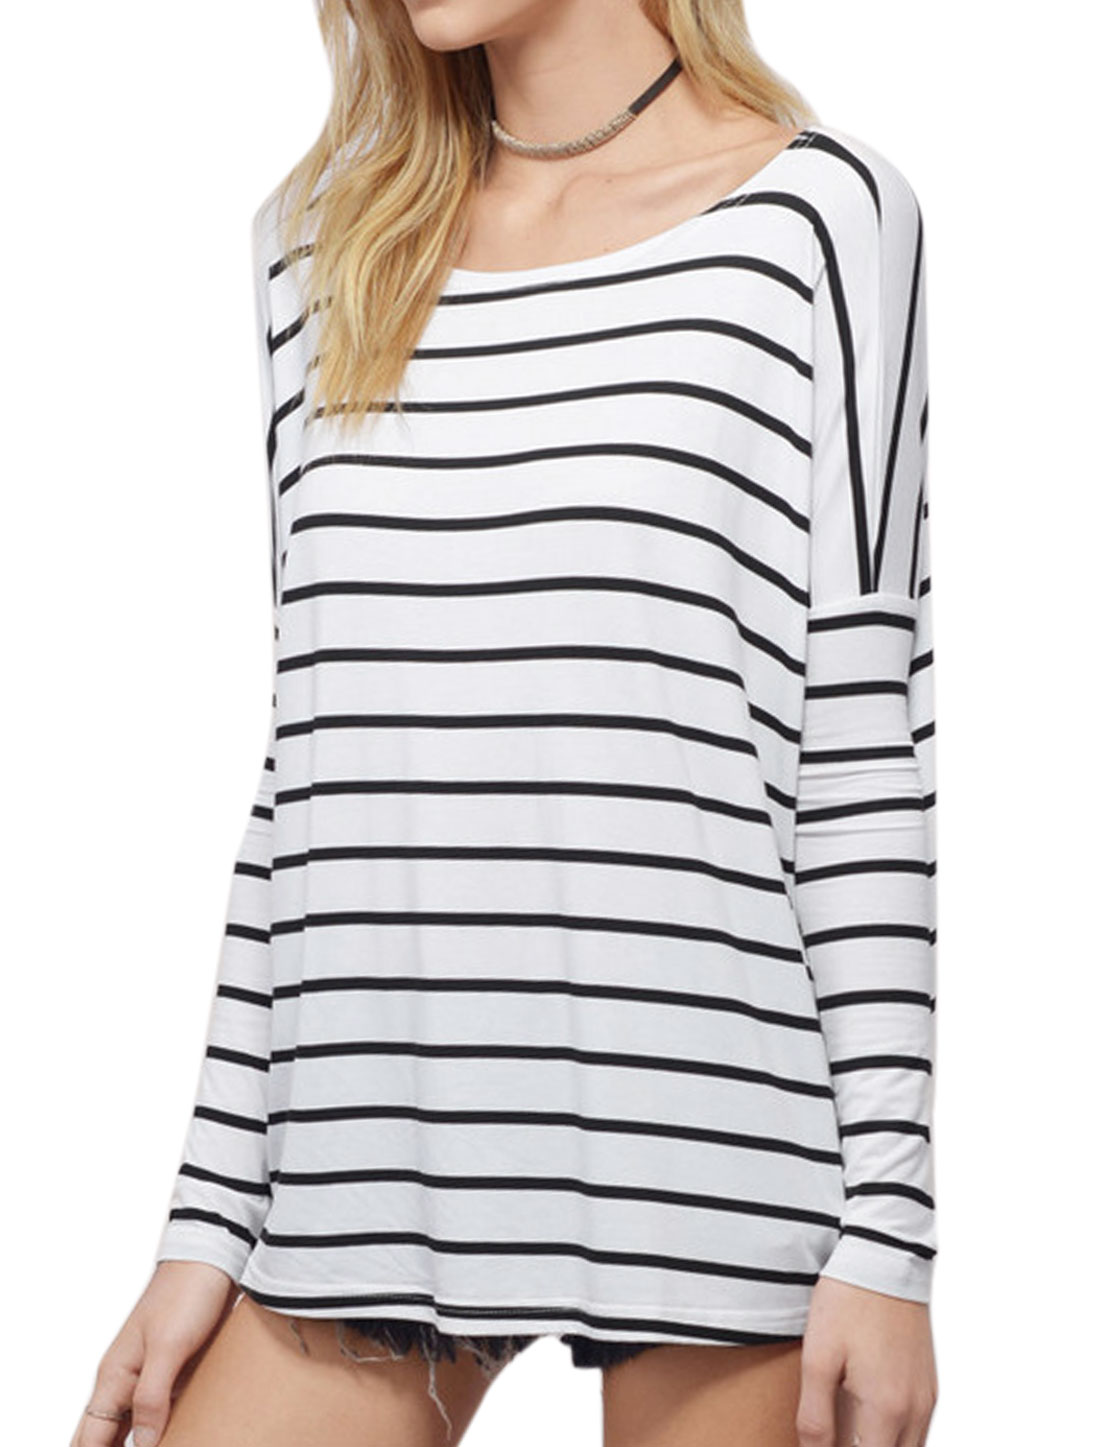 Lady Round Neck Long Dolman Sleeves Stripes Tunic T-Shirt White M